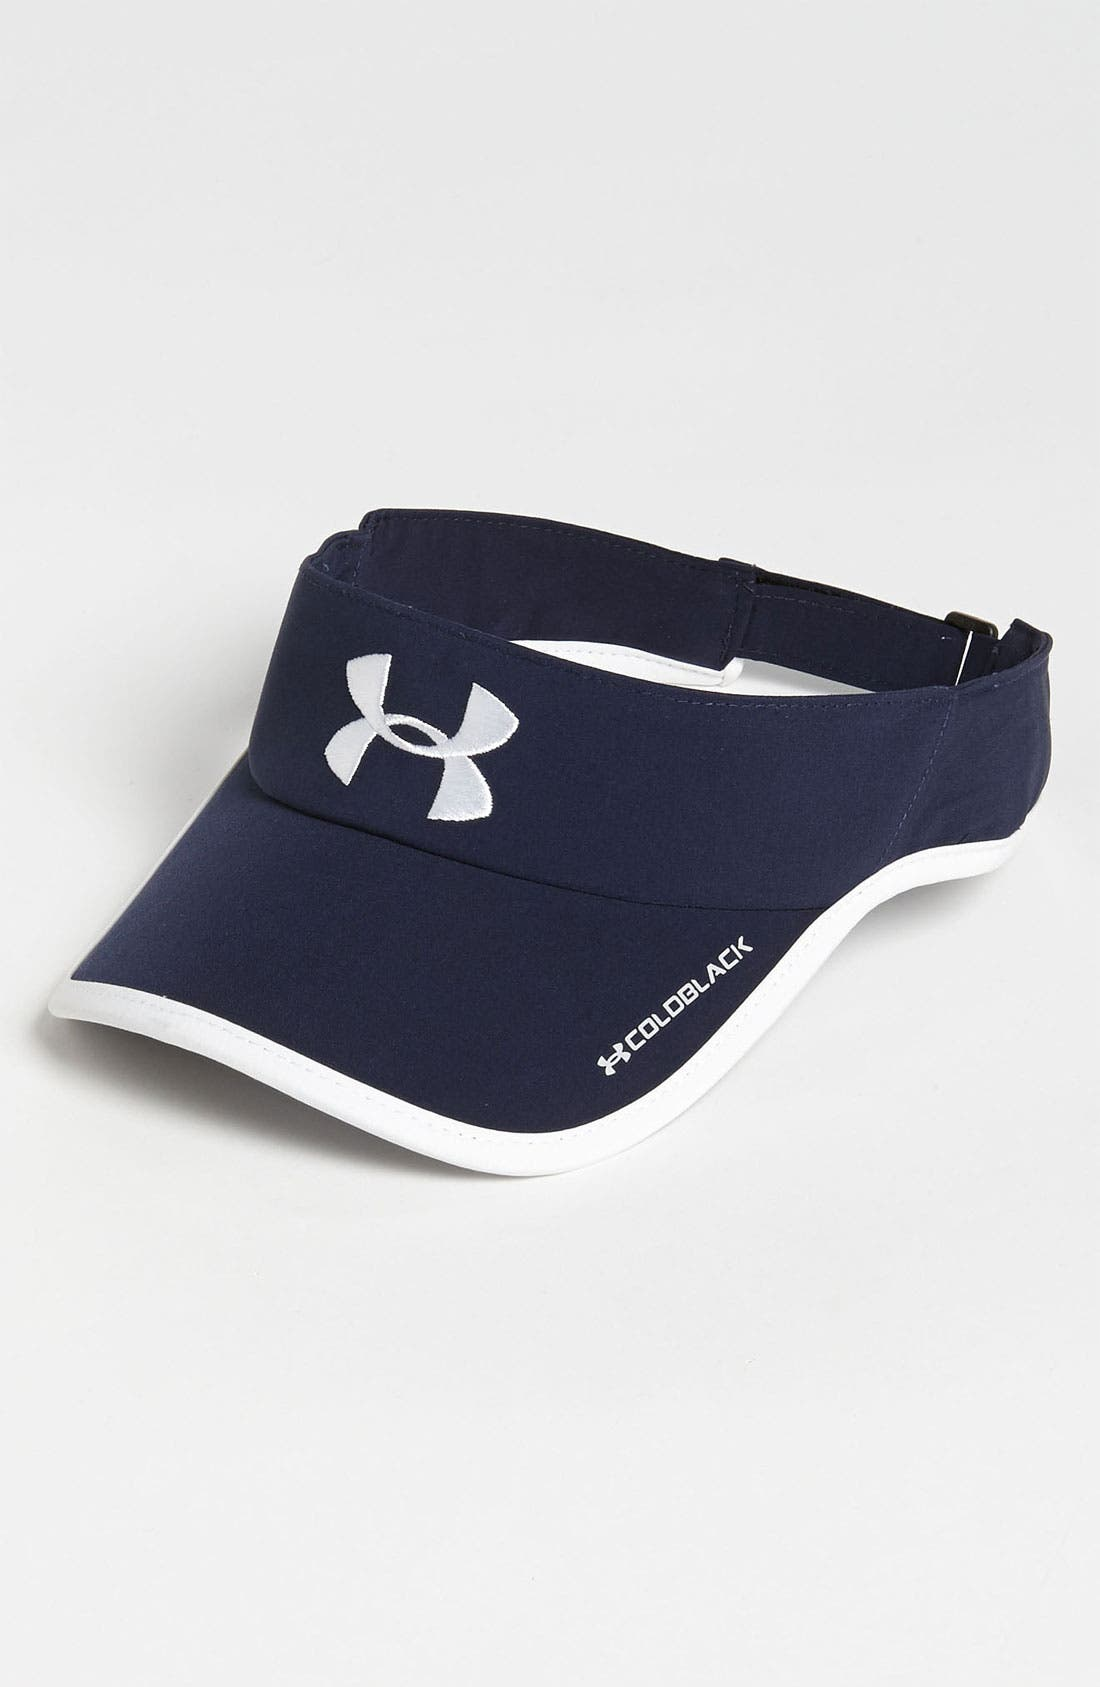 Main Image - Under Armour 'Shadow' Visor